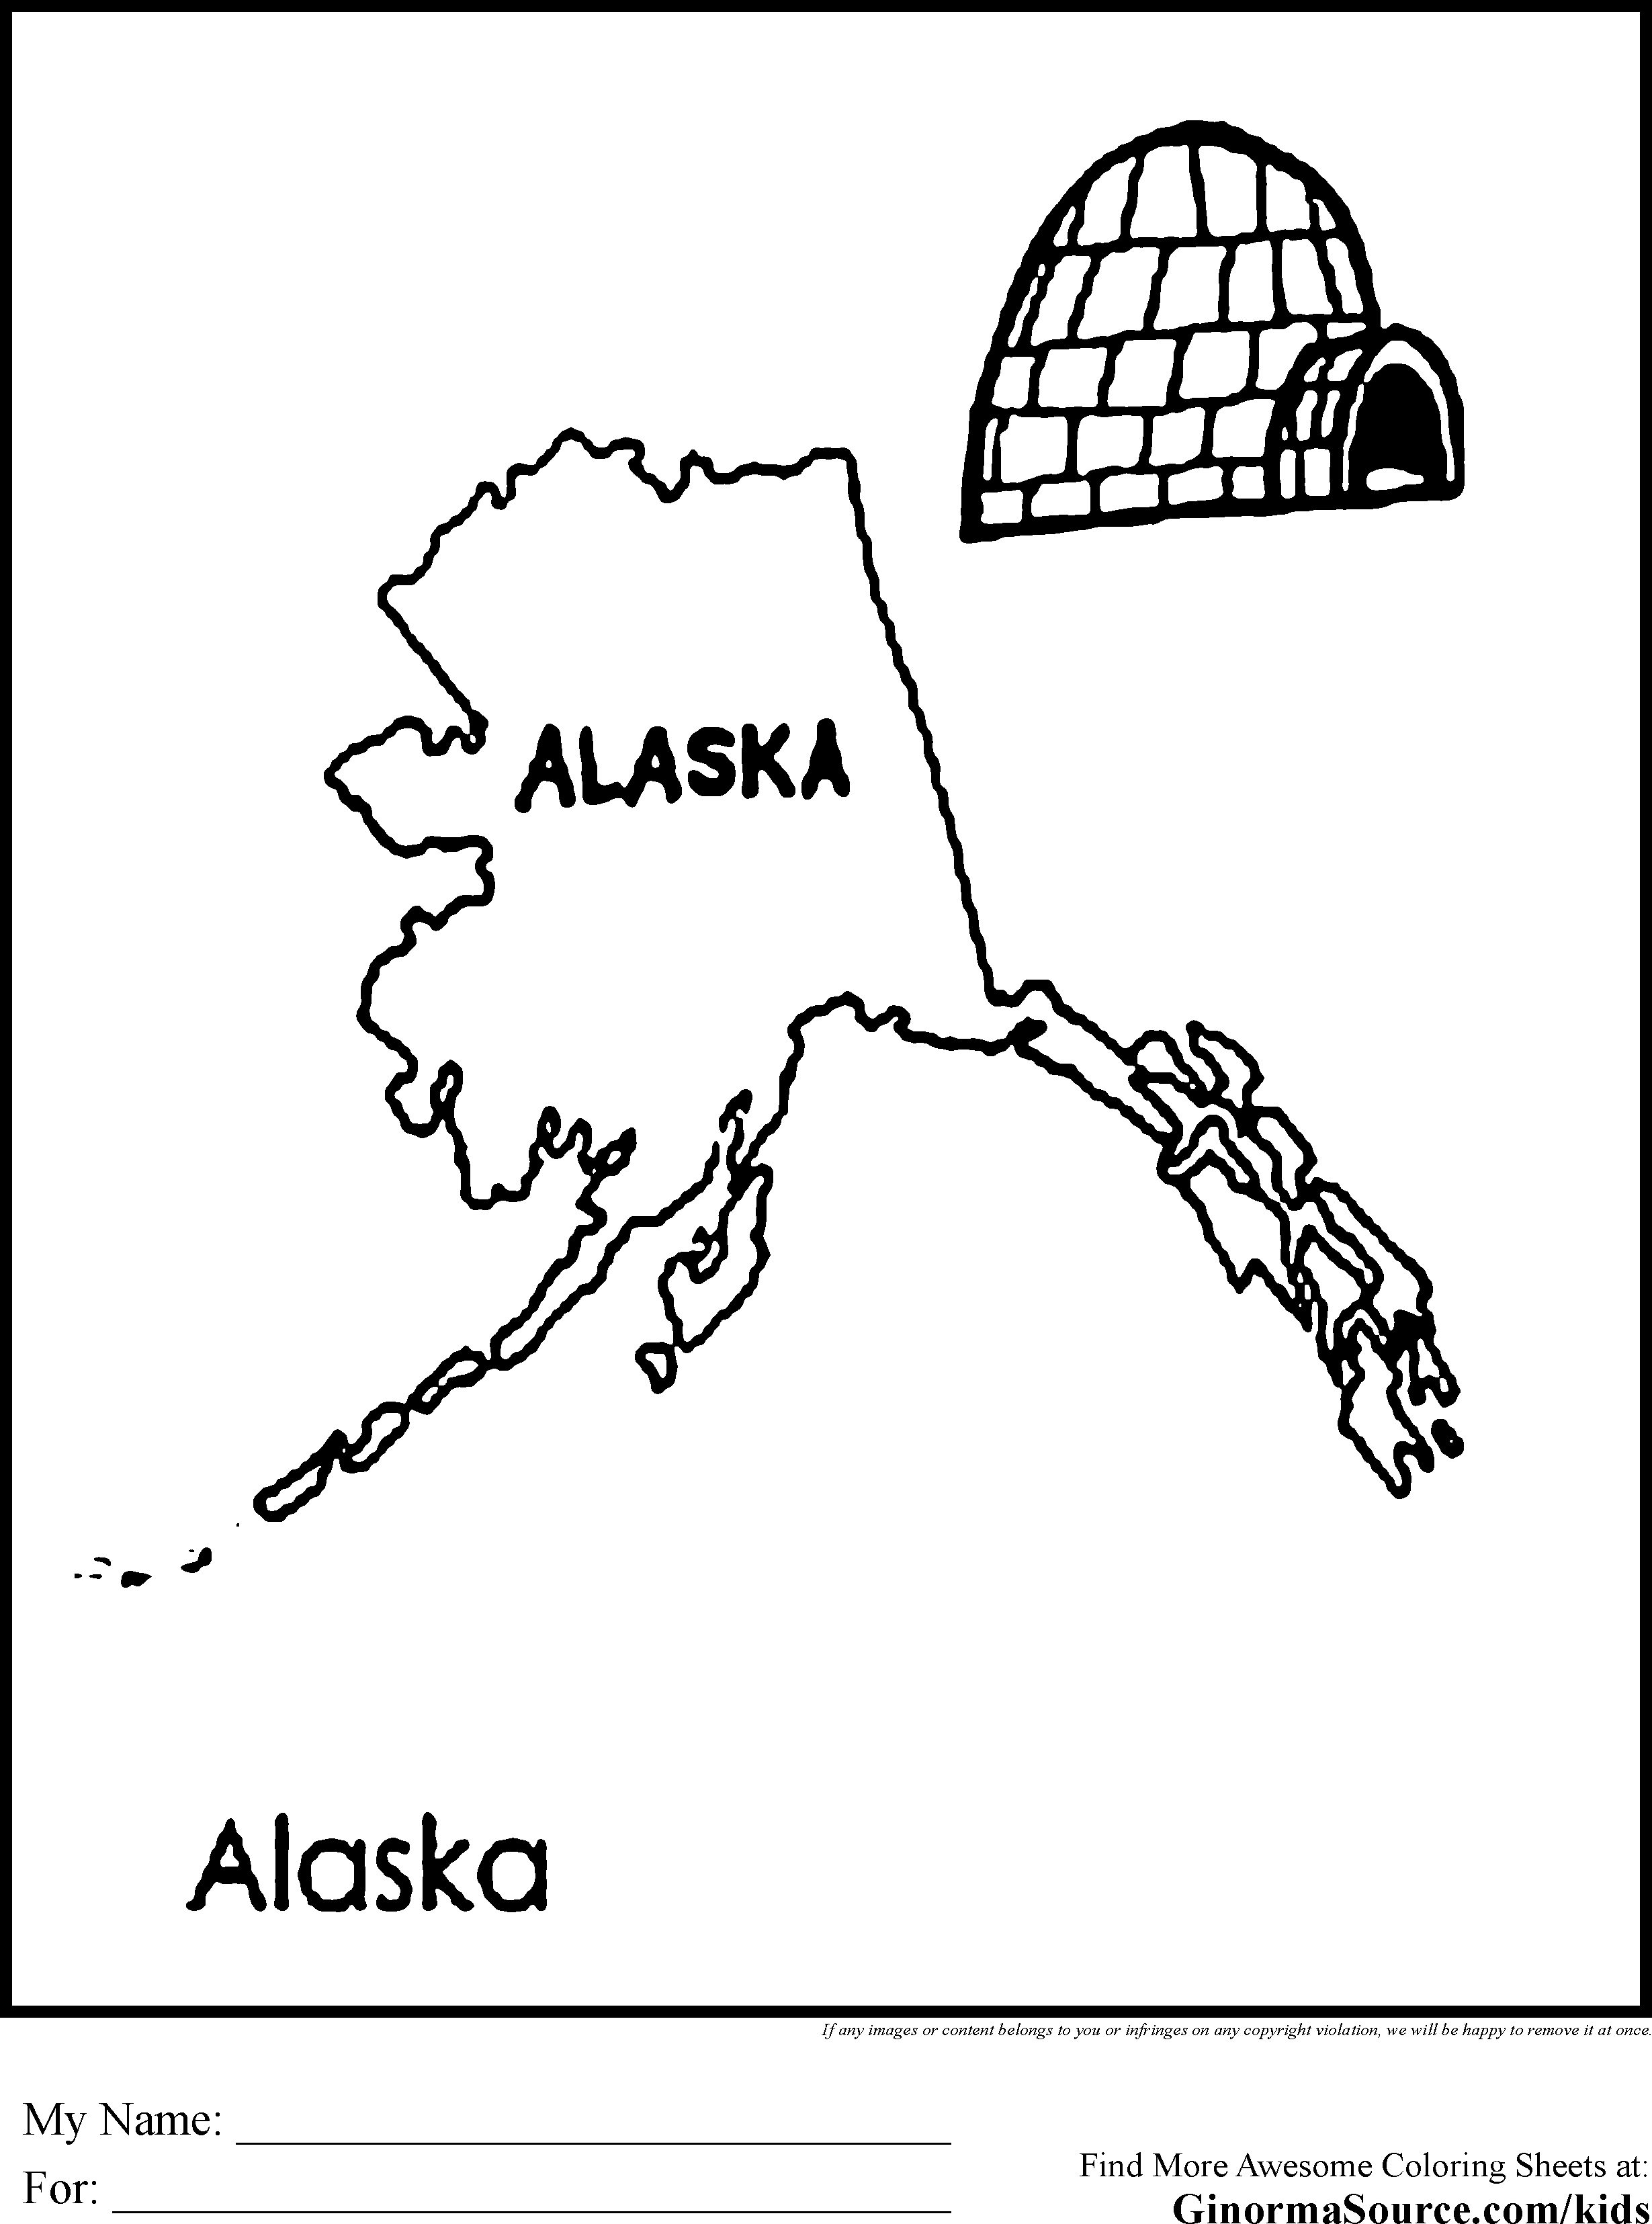 Alaska coloring pages coloring home for Alaska coloring pages